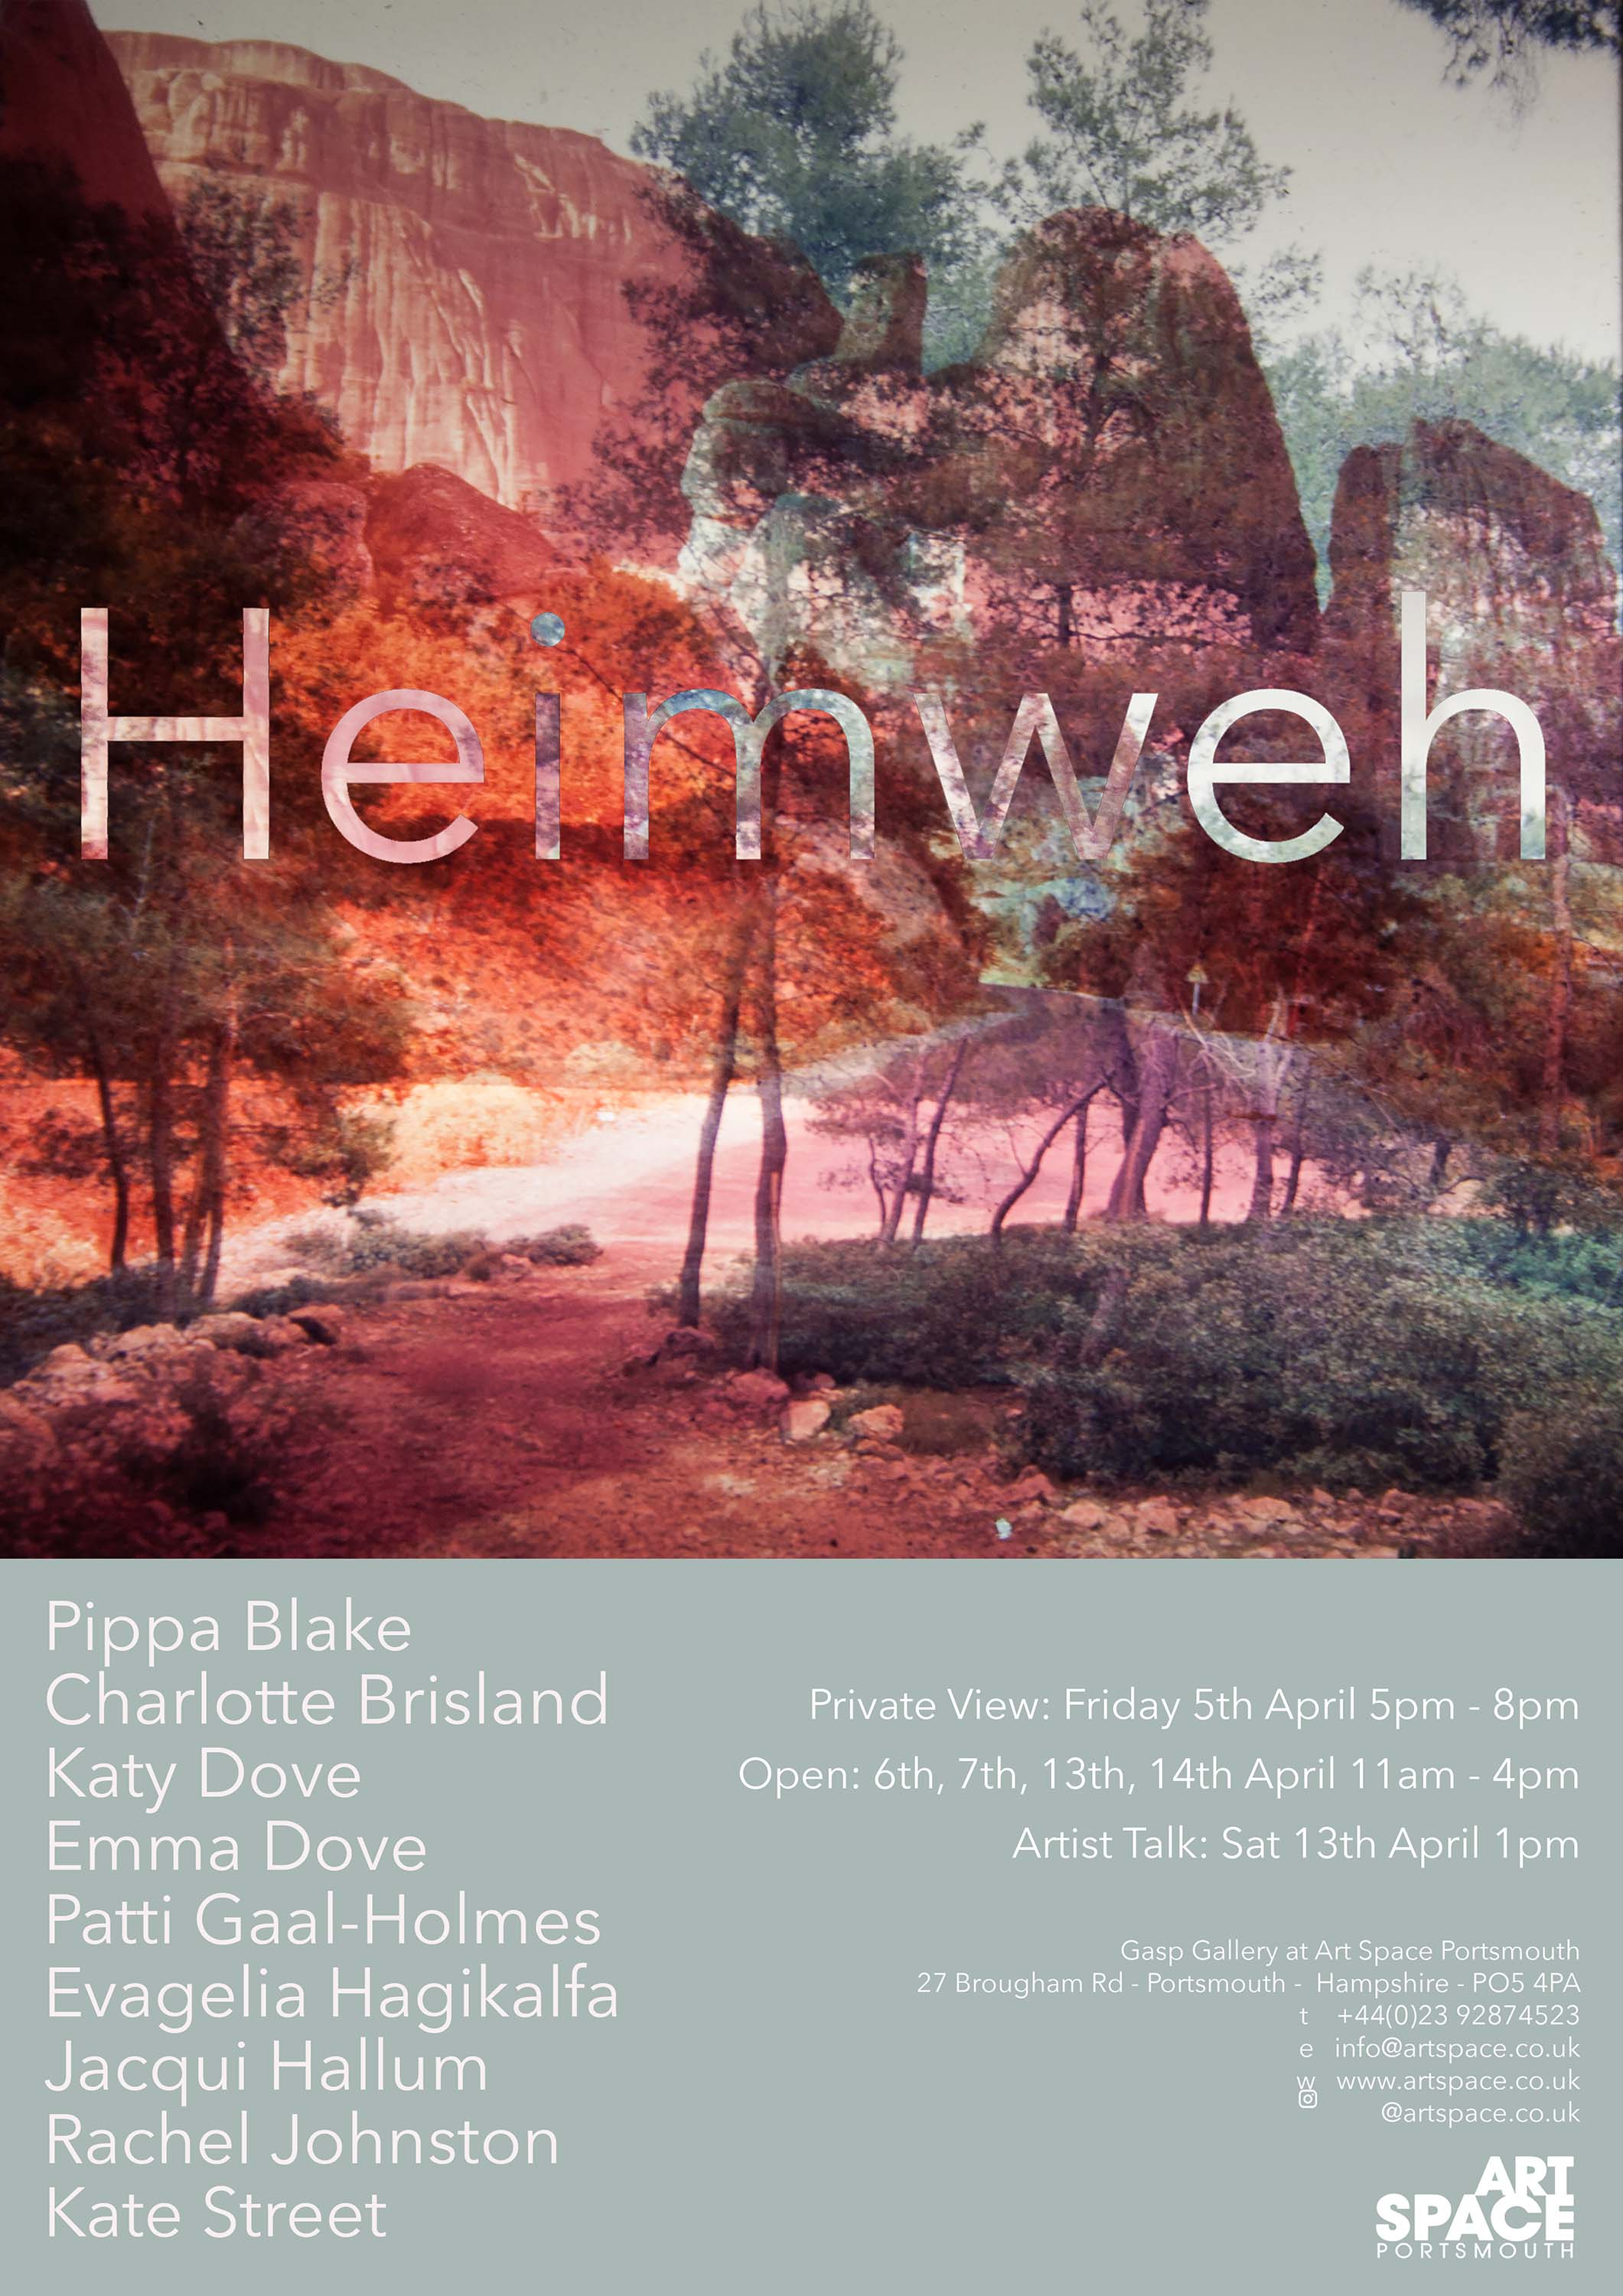 heimweh_poster_low res.jpg